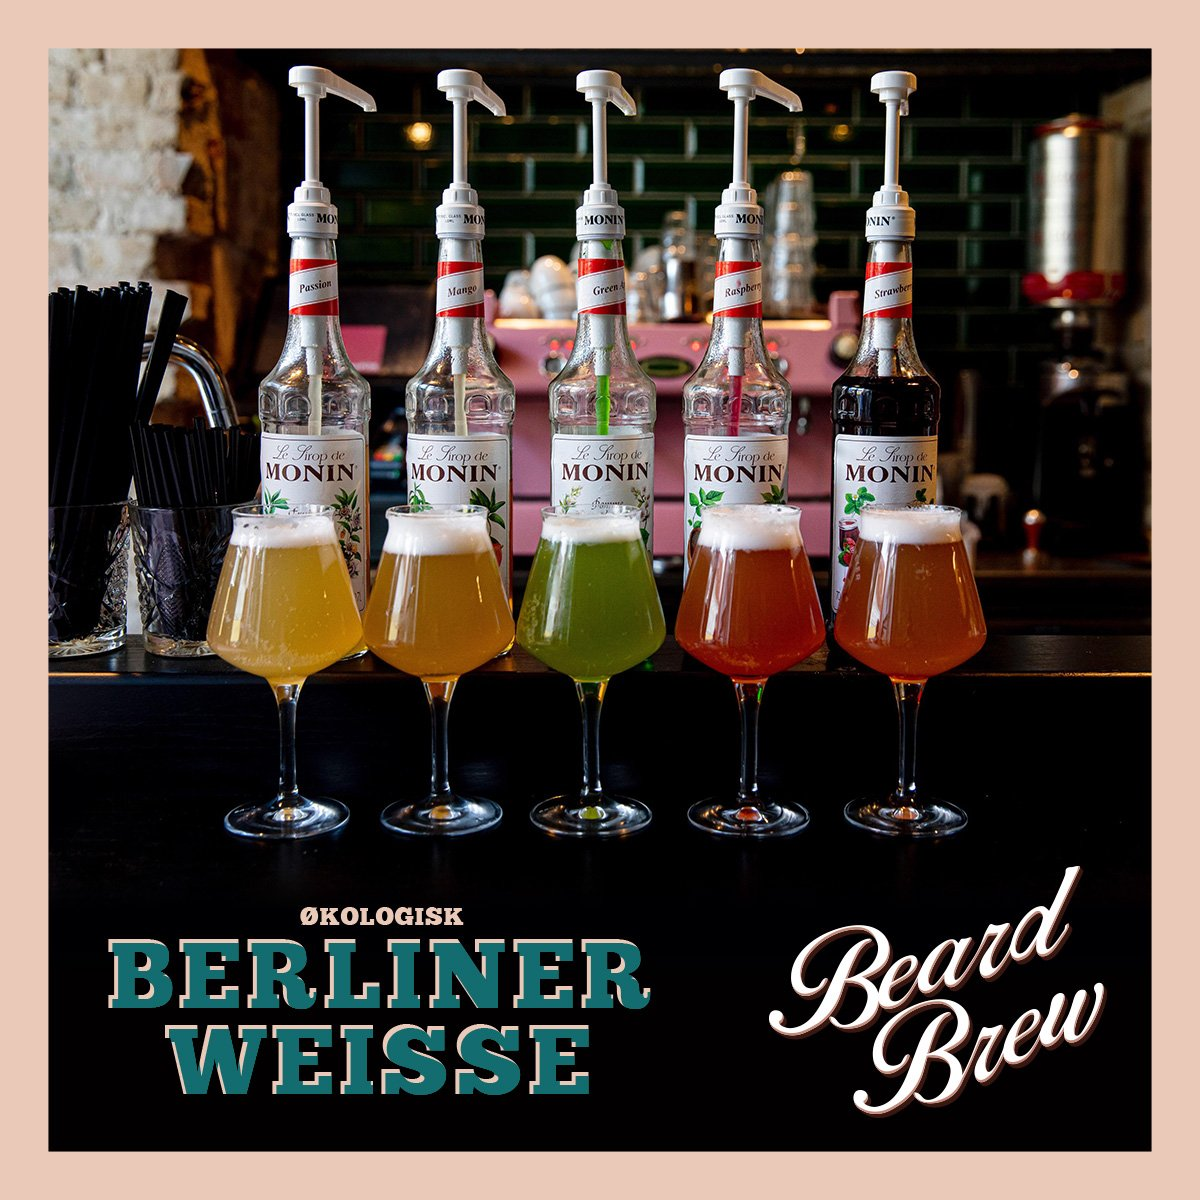 BeardBrew-BerlinerWiesse-02